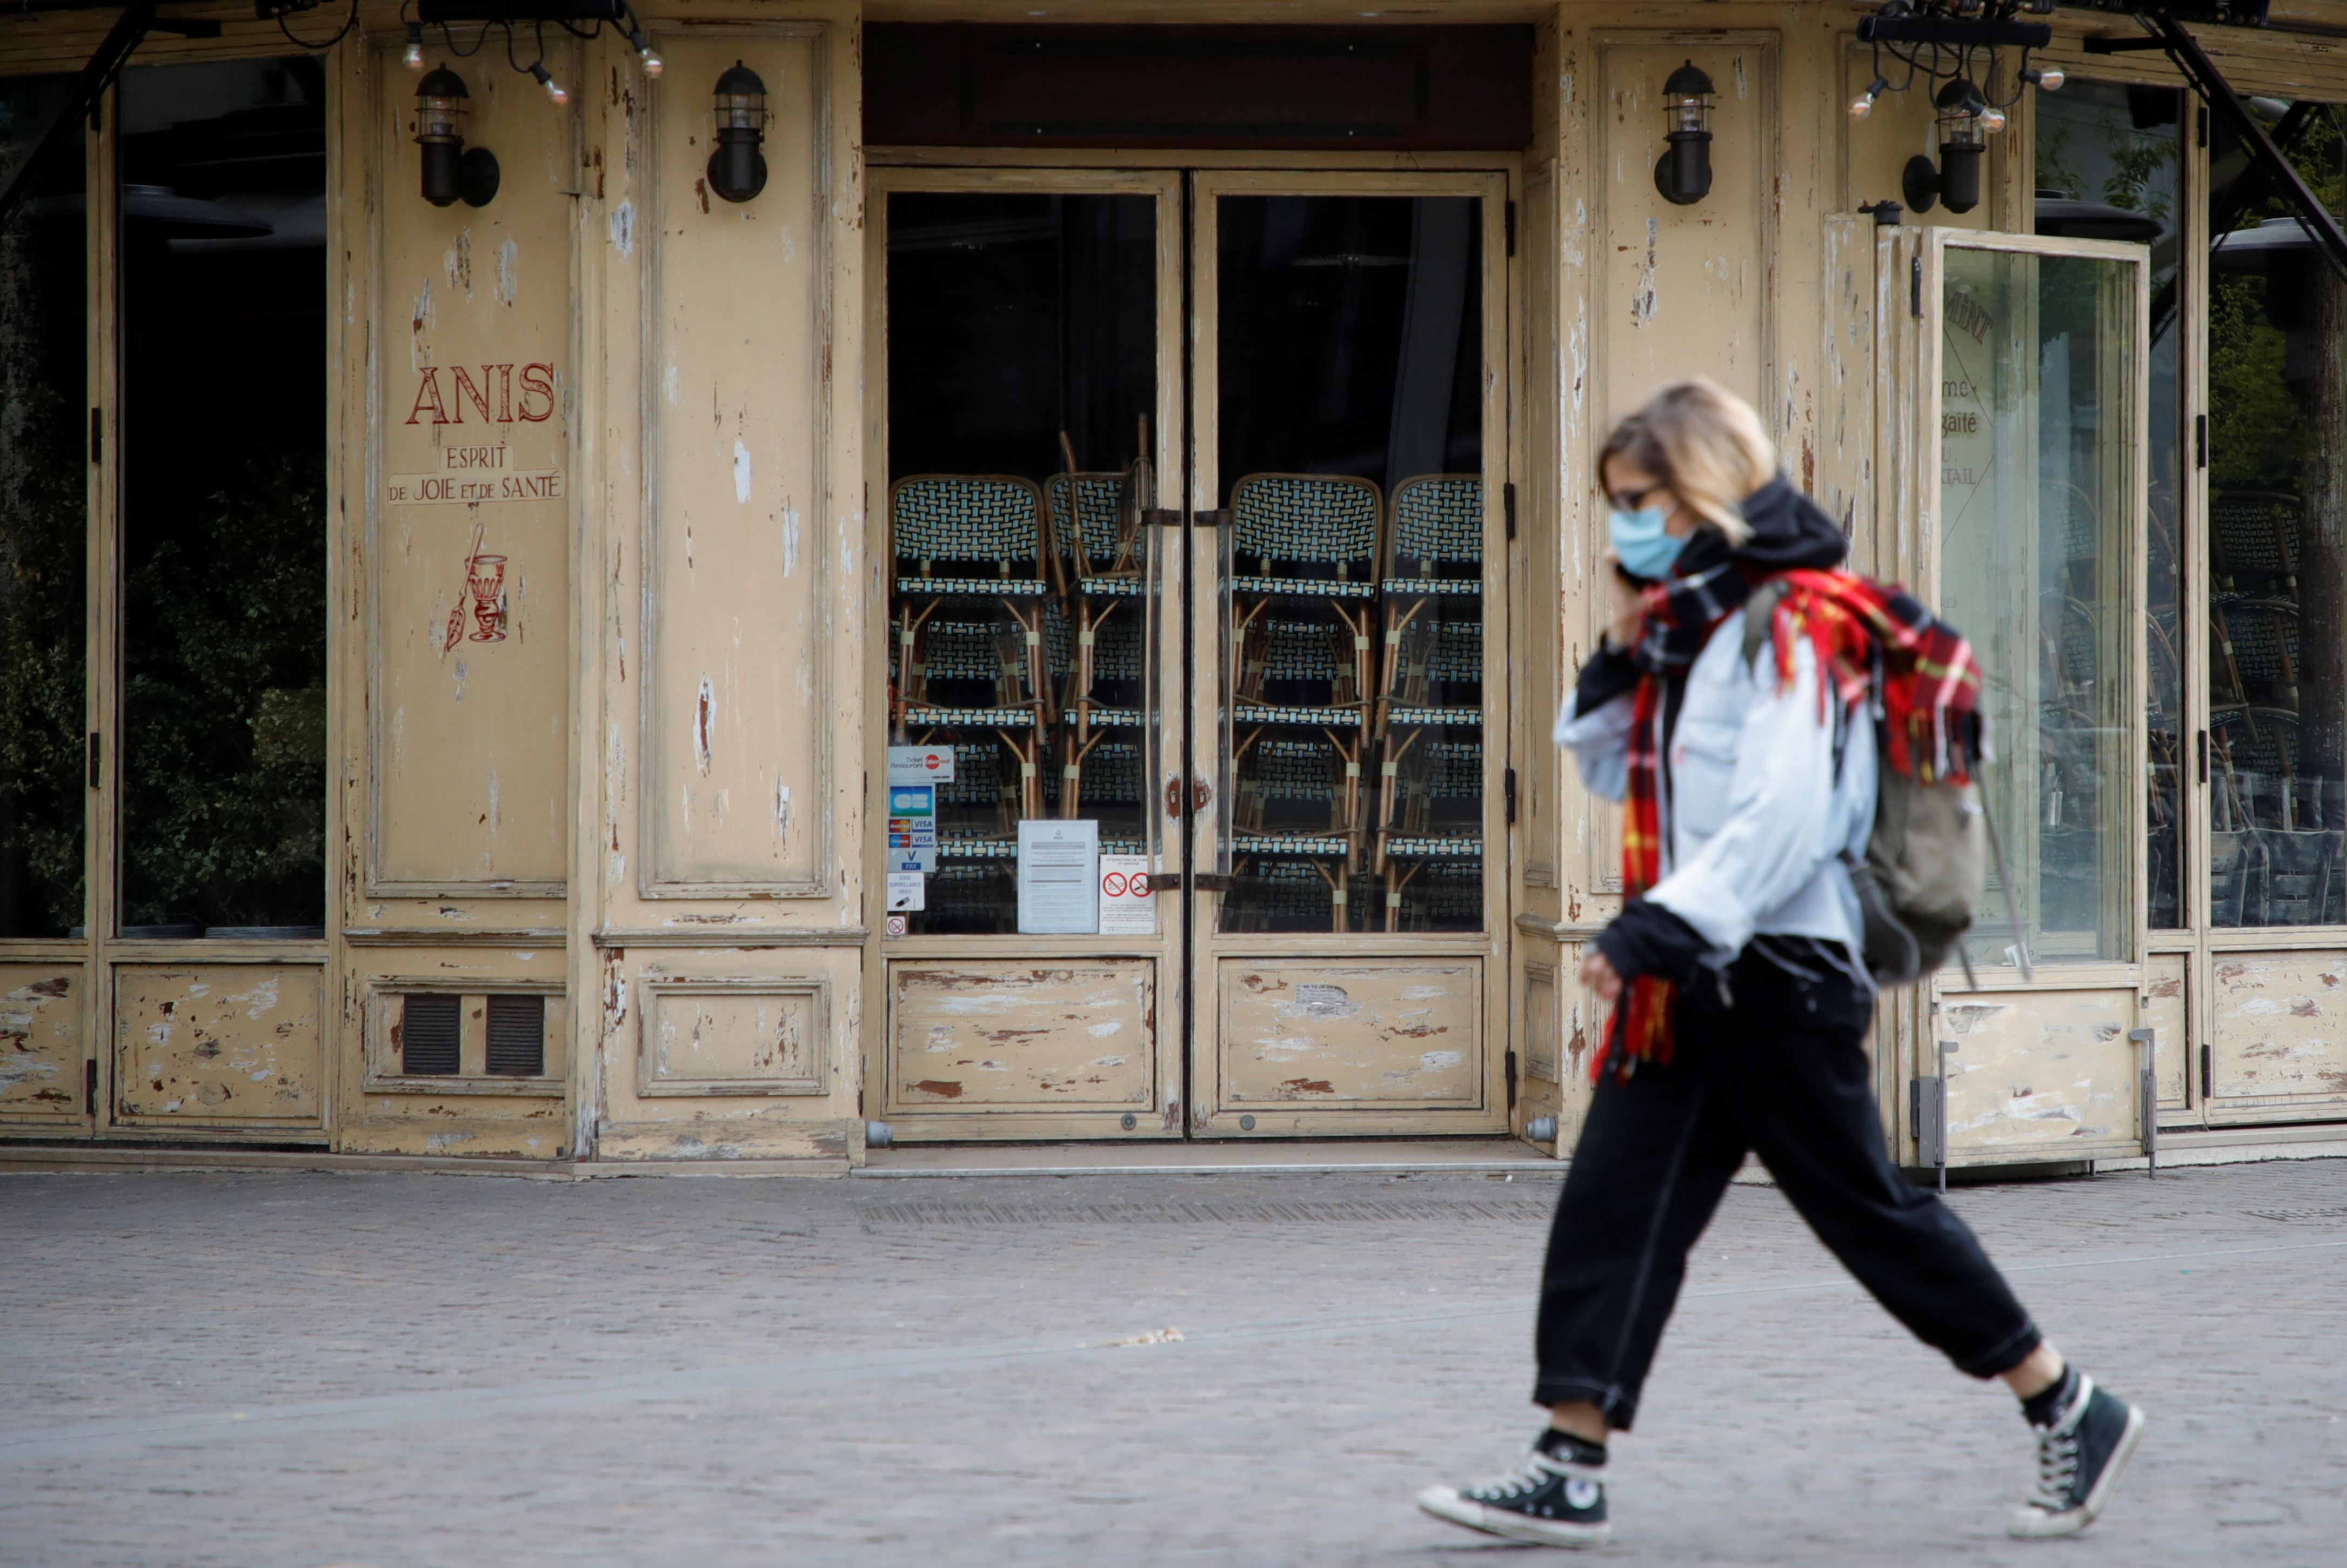 A woman, wearing a protective face mask, walks past a closed restaurant in Paris amid the coronavirus disease (COVID-19) outbreak in Paris, France, April 29, 2021. REUTERS/Sarah Meyssonnier